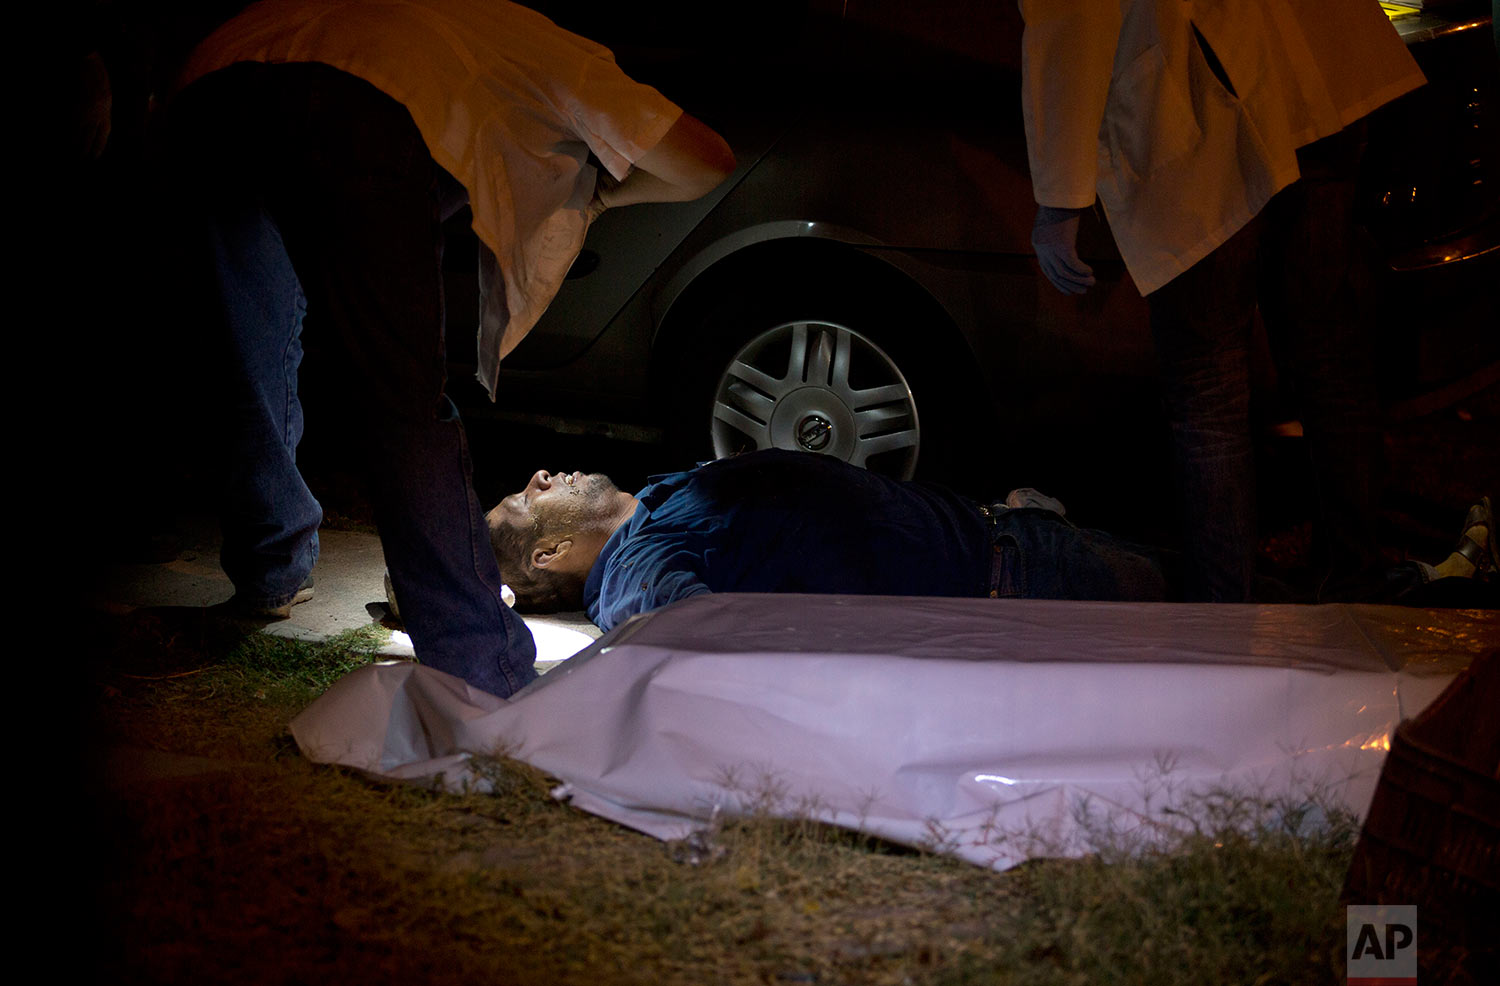 """In this early June 29, 2017 photo, forensics inspect the body of a man who was shot in Culiacan, Sinaloa state, Mexico. Sinaloa is home to the cartel of the same name that was long run by notorious kingpin Joaquin """"El Chapo"""" Guzman. Since Guzman's arrest last year and extradition to the United States in January, Sinaloa has been one of the country's bloodiest battlegrounds as rival factions fight to fill the vacuum. (AP Photo/Enric Marti)"""